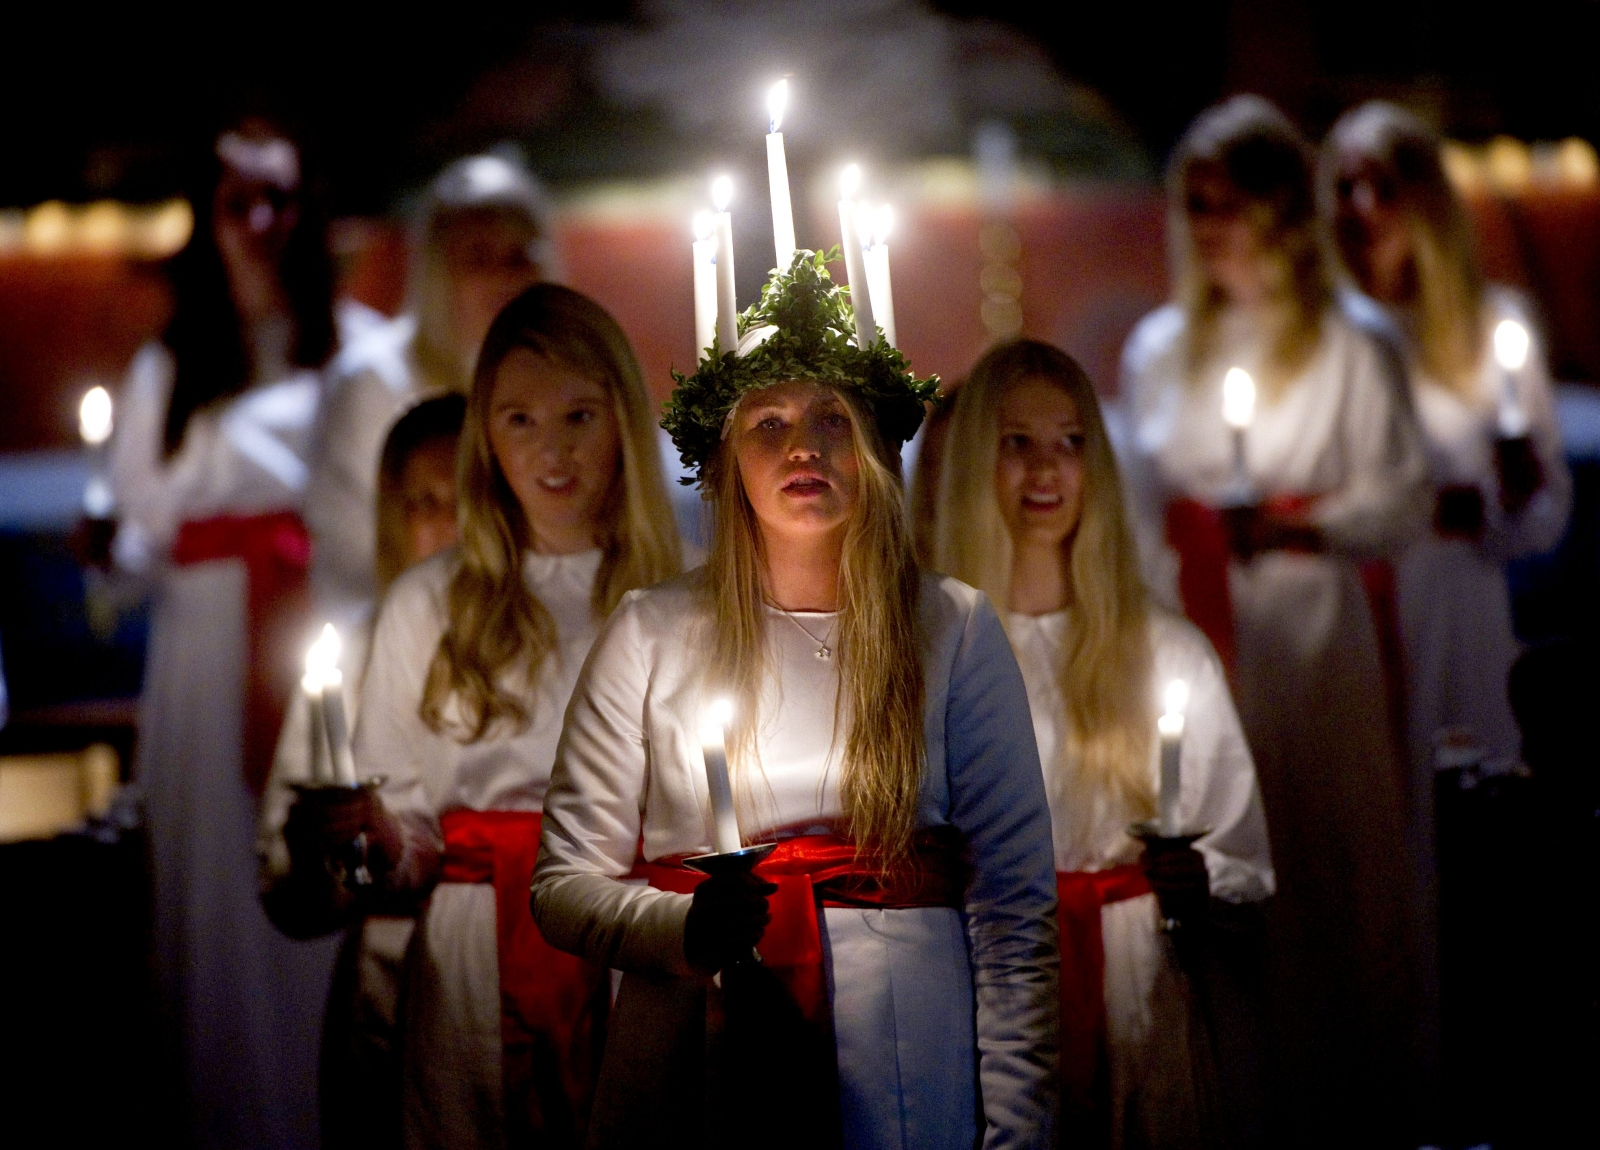 Lucia Day